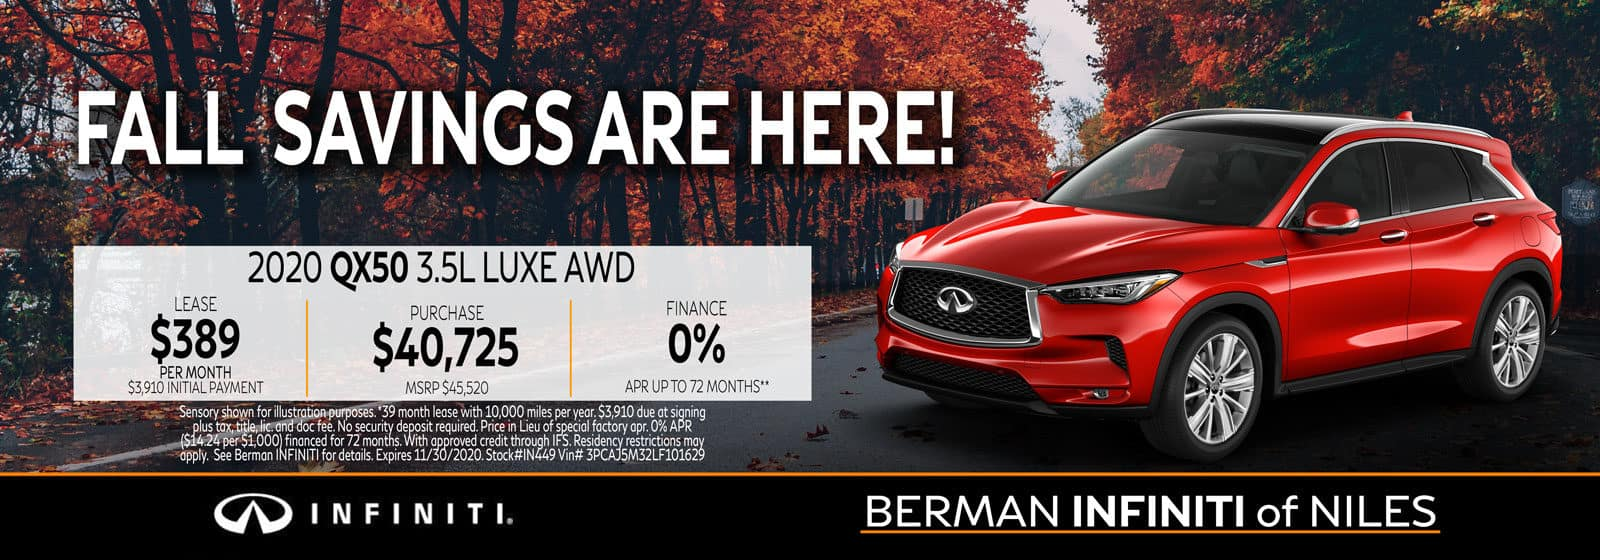 New 2020 INFINITI QX50 November Offer at Berman INFINITI of Niles!